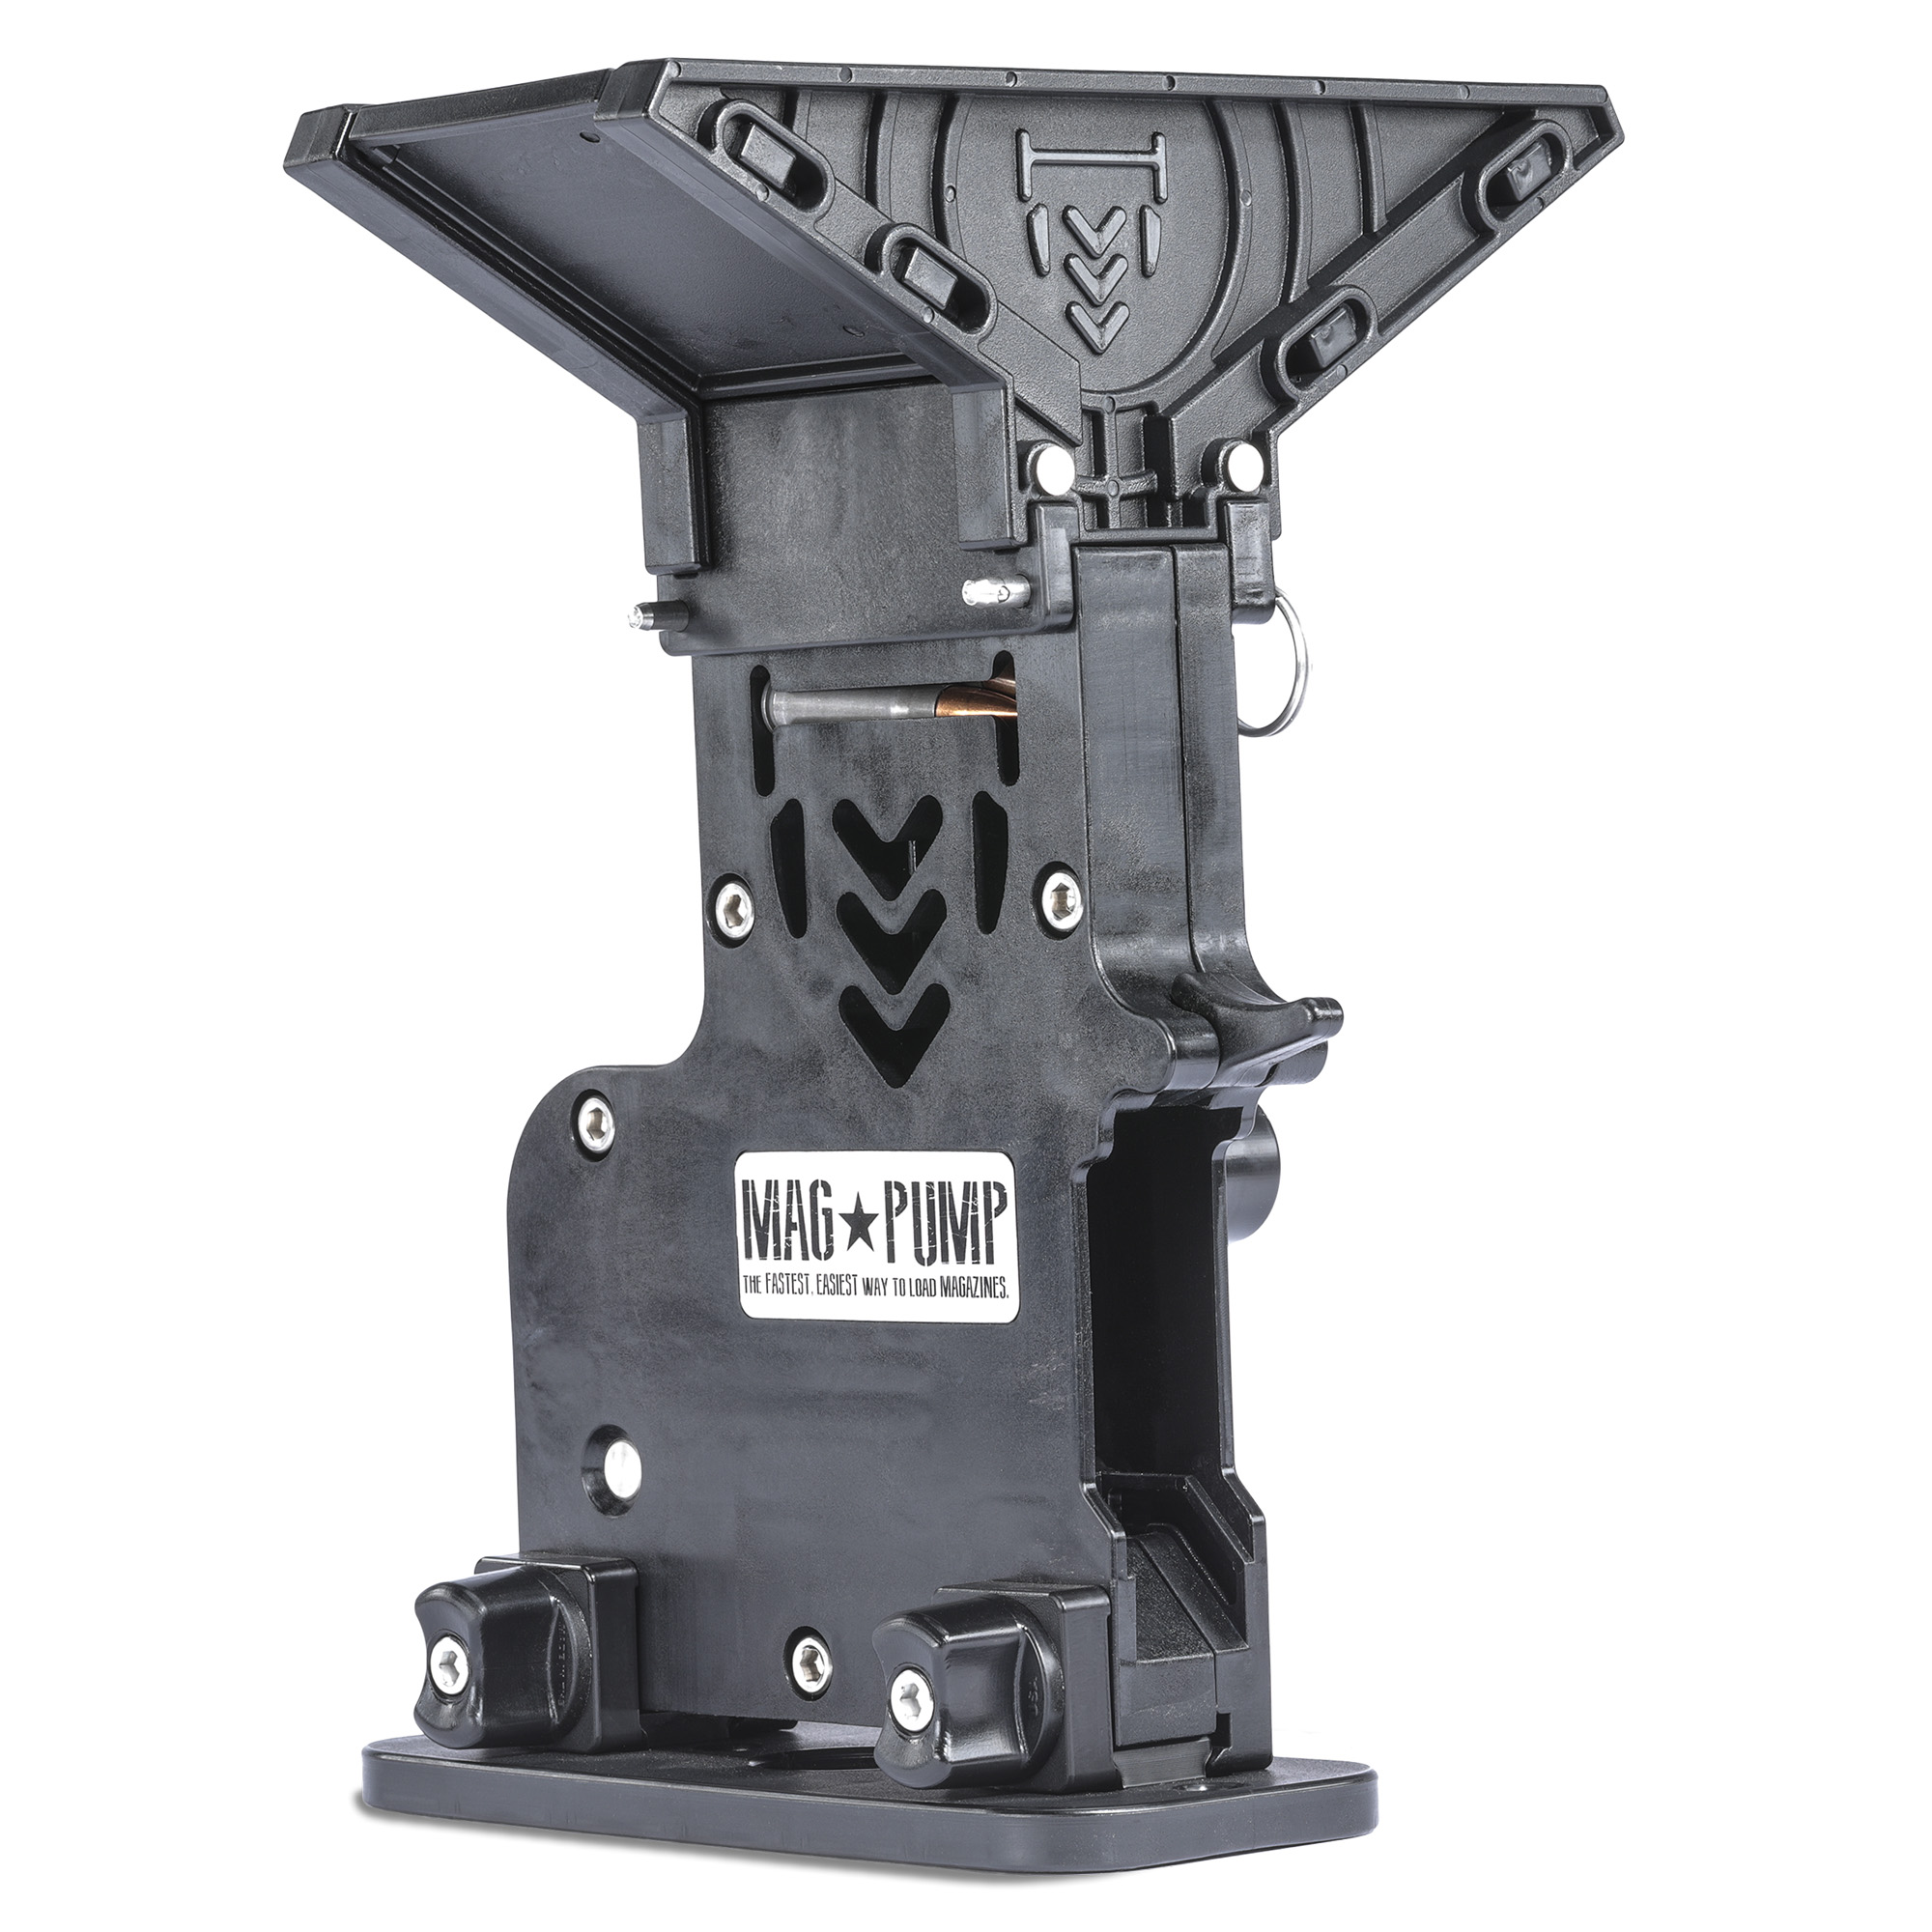 """This hopper-fed"""" loose-ammo loader eliminates hand fatigue and reduces magazine loading time by more than 50 percent. Simply load your ammo in the 65-round capacity hopper and let MagPump do the rest. The pump-action lever self-sorts ammunition in either direction"""" and loads up to 60 rounds in less than 60 seconds. Compatible with 7.62 x 39 mm cartridges."""